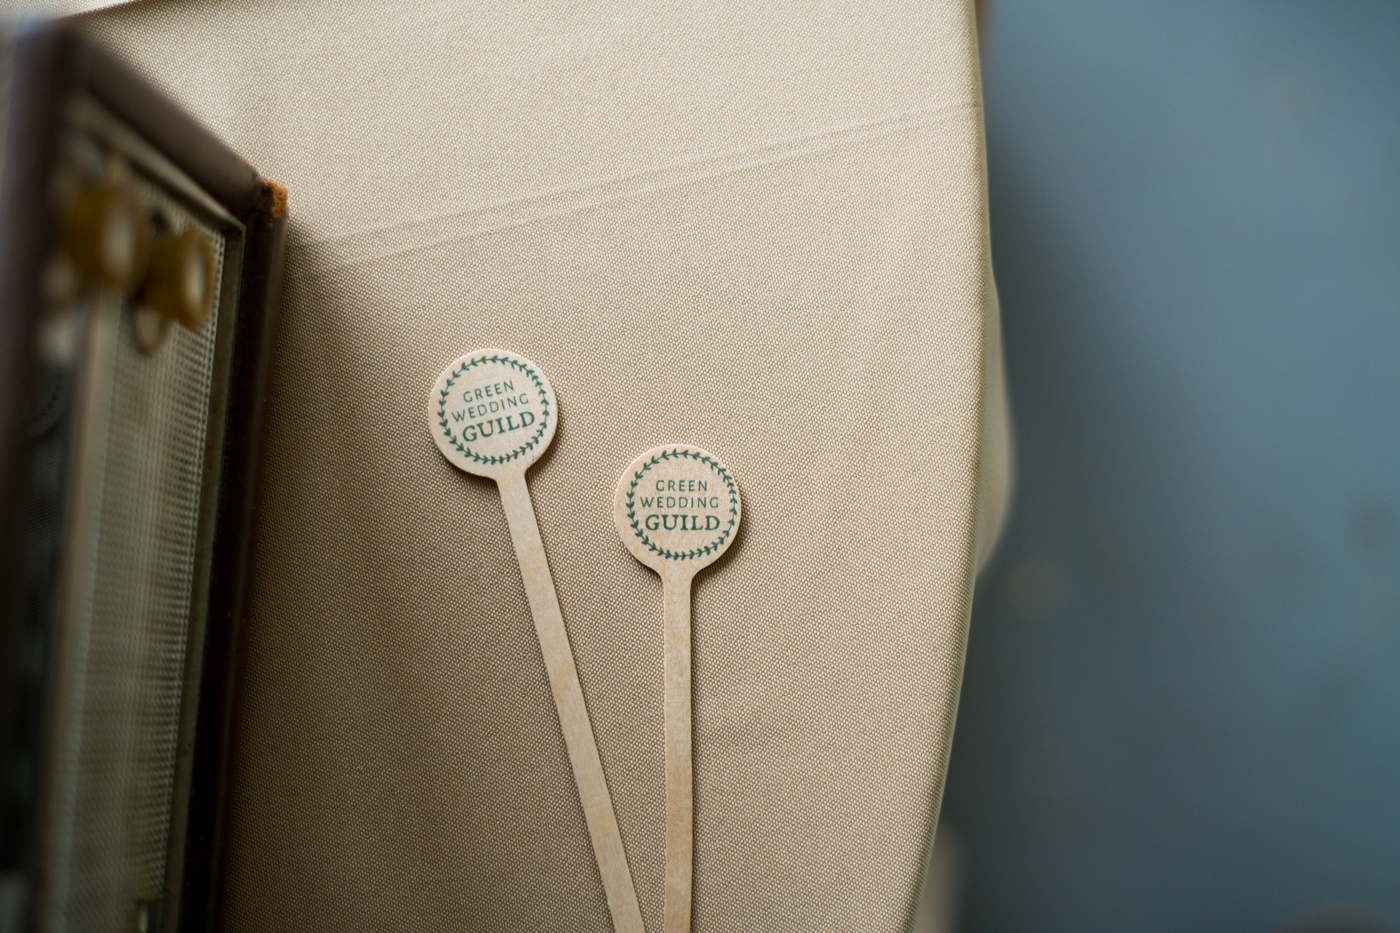 signs for Green Wedding Guild styled shoot